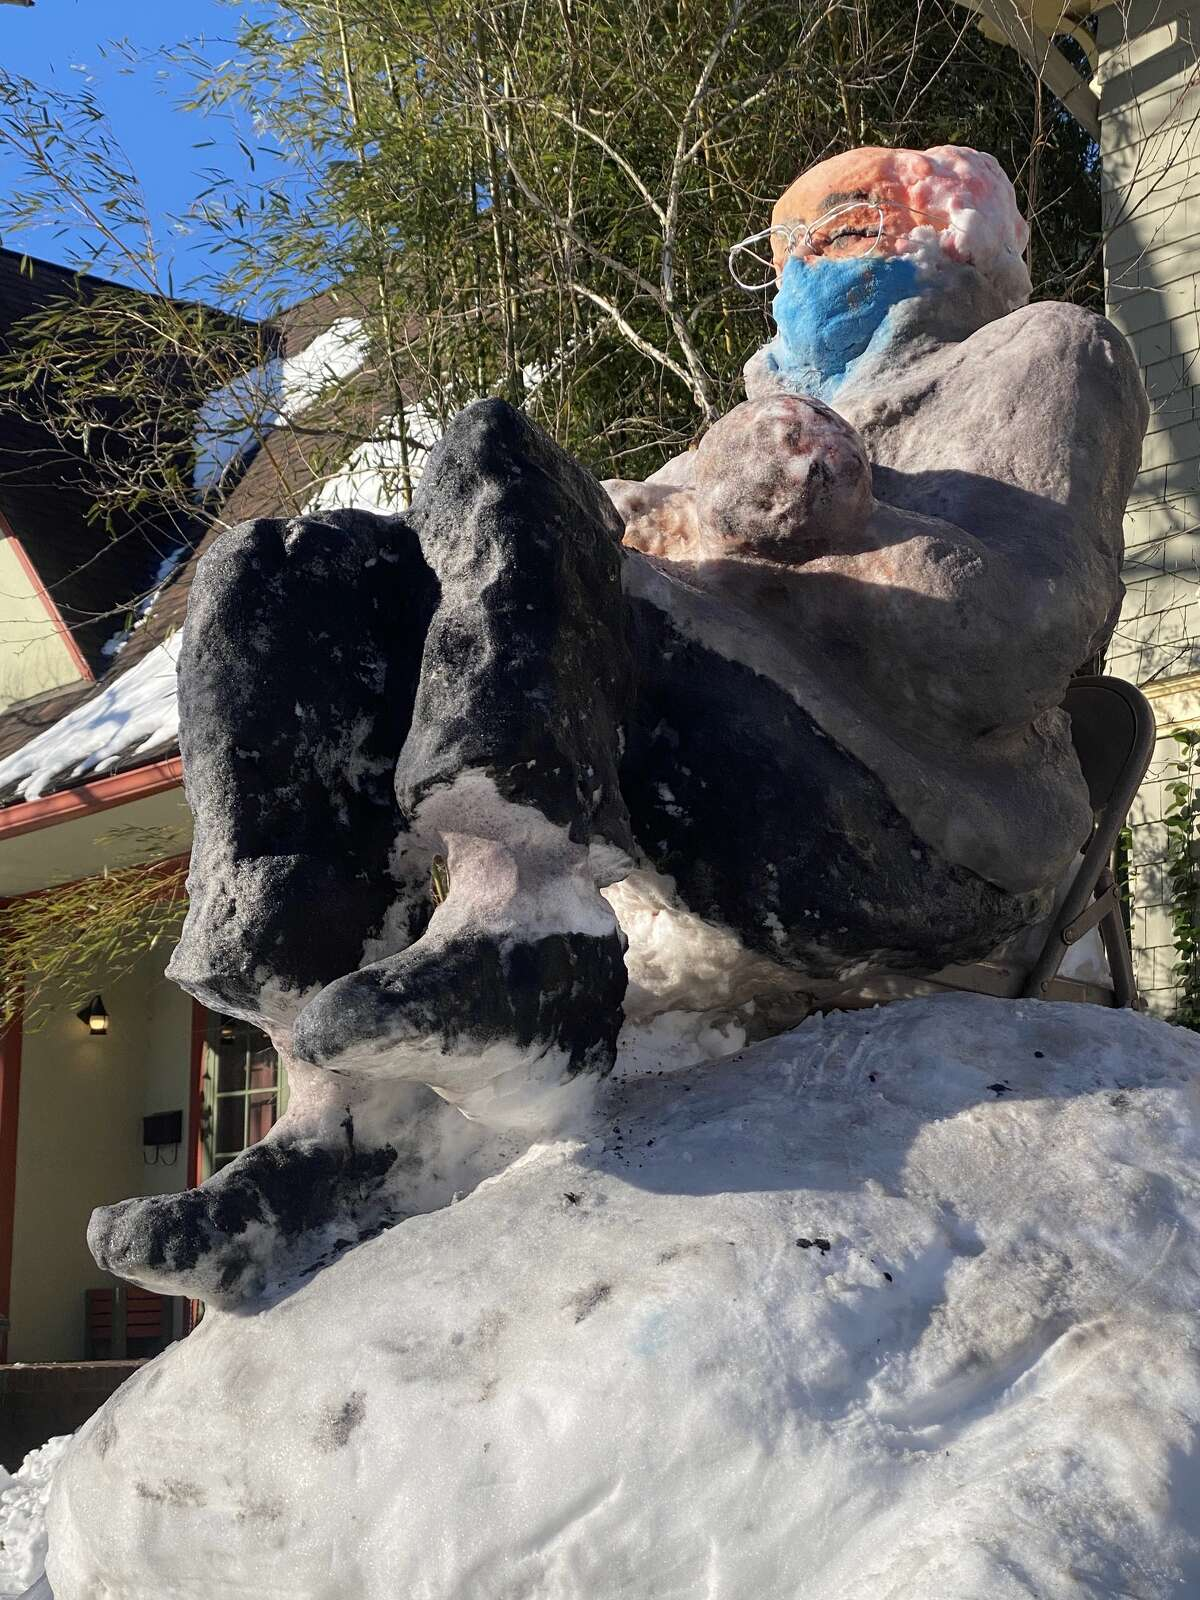 The sun beats down on SnowBernie's face. He's made snow sculptures before, and said